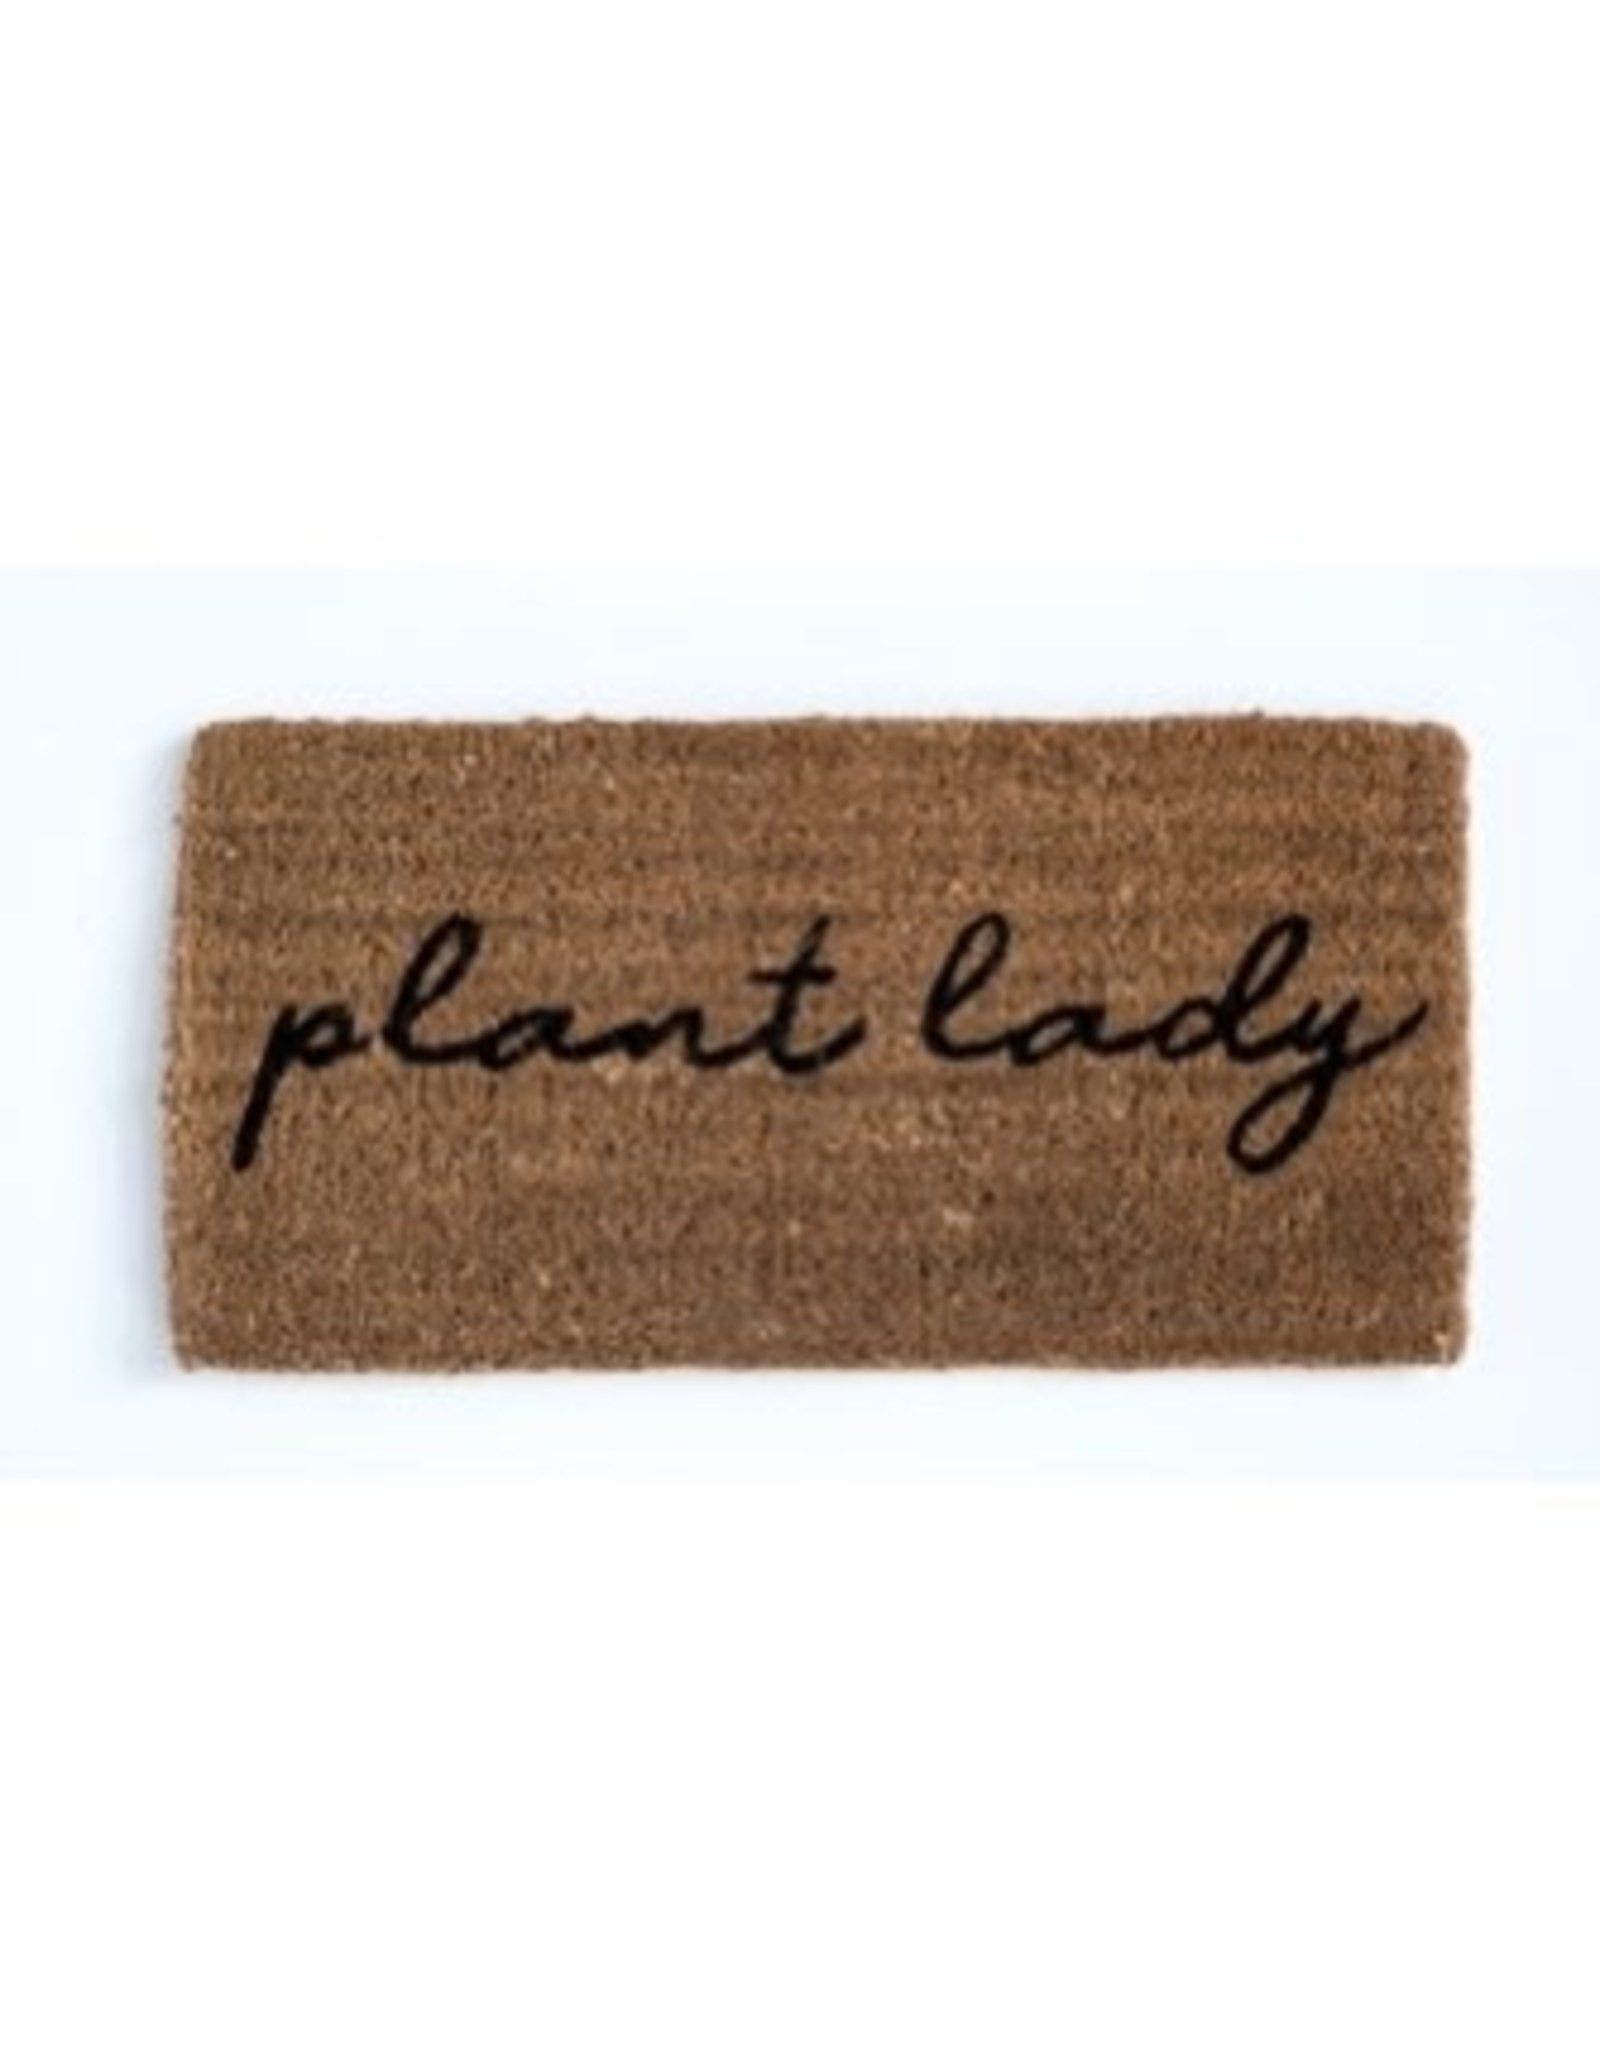 Creative Co-op Plant Lady Welcome Mat